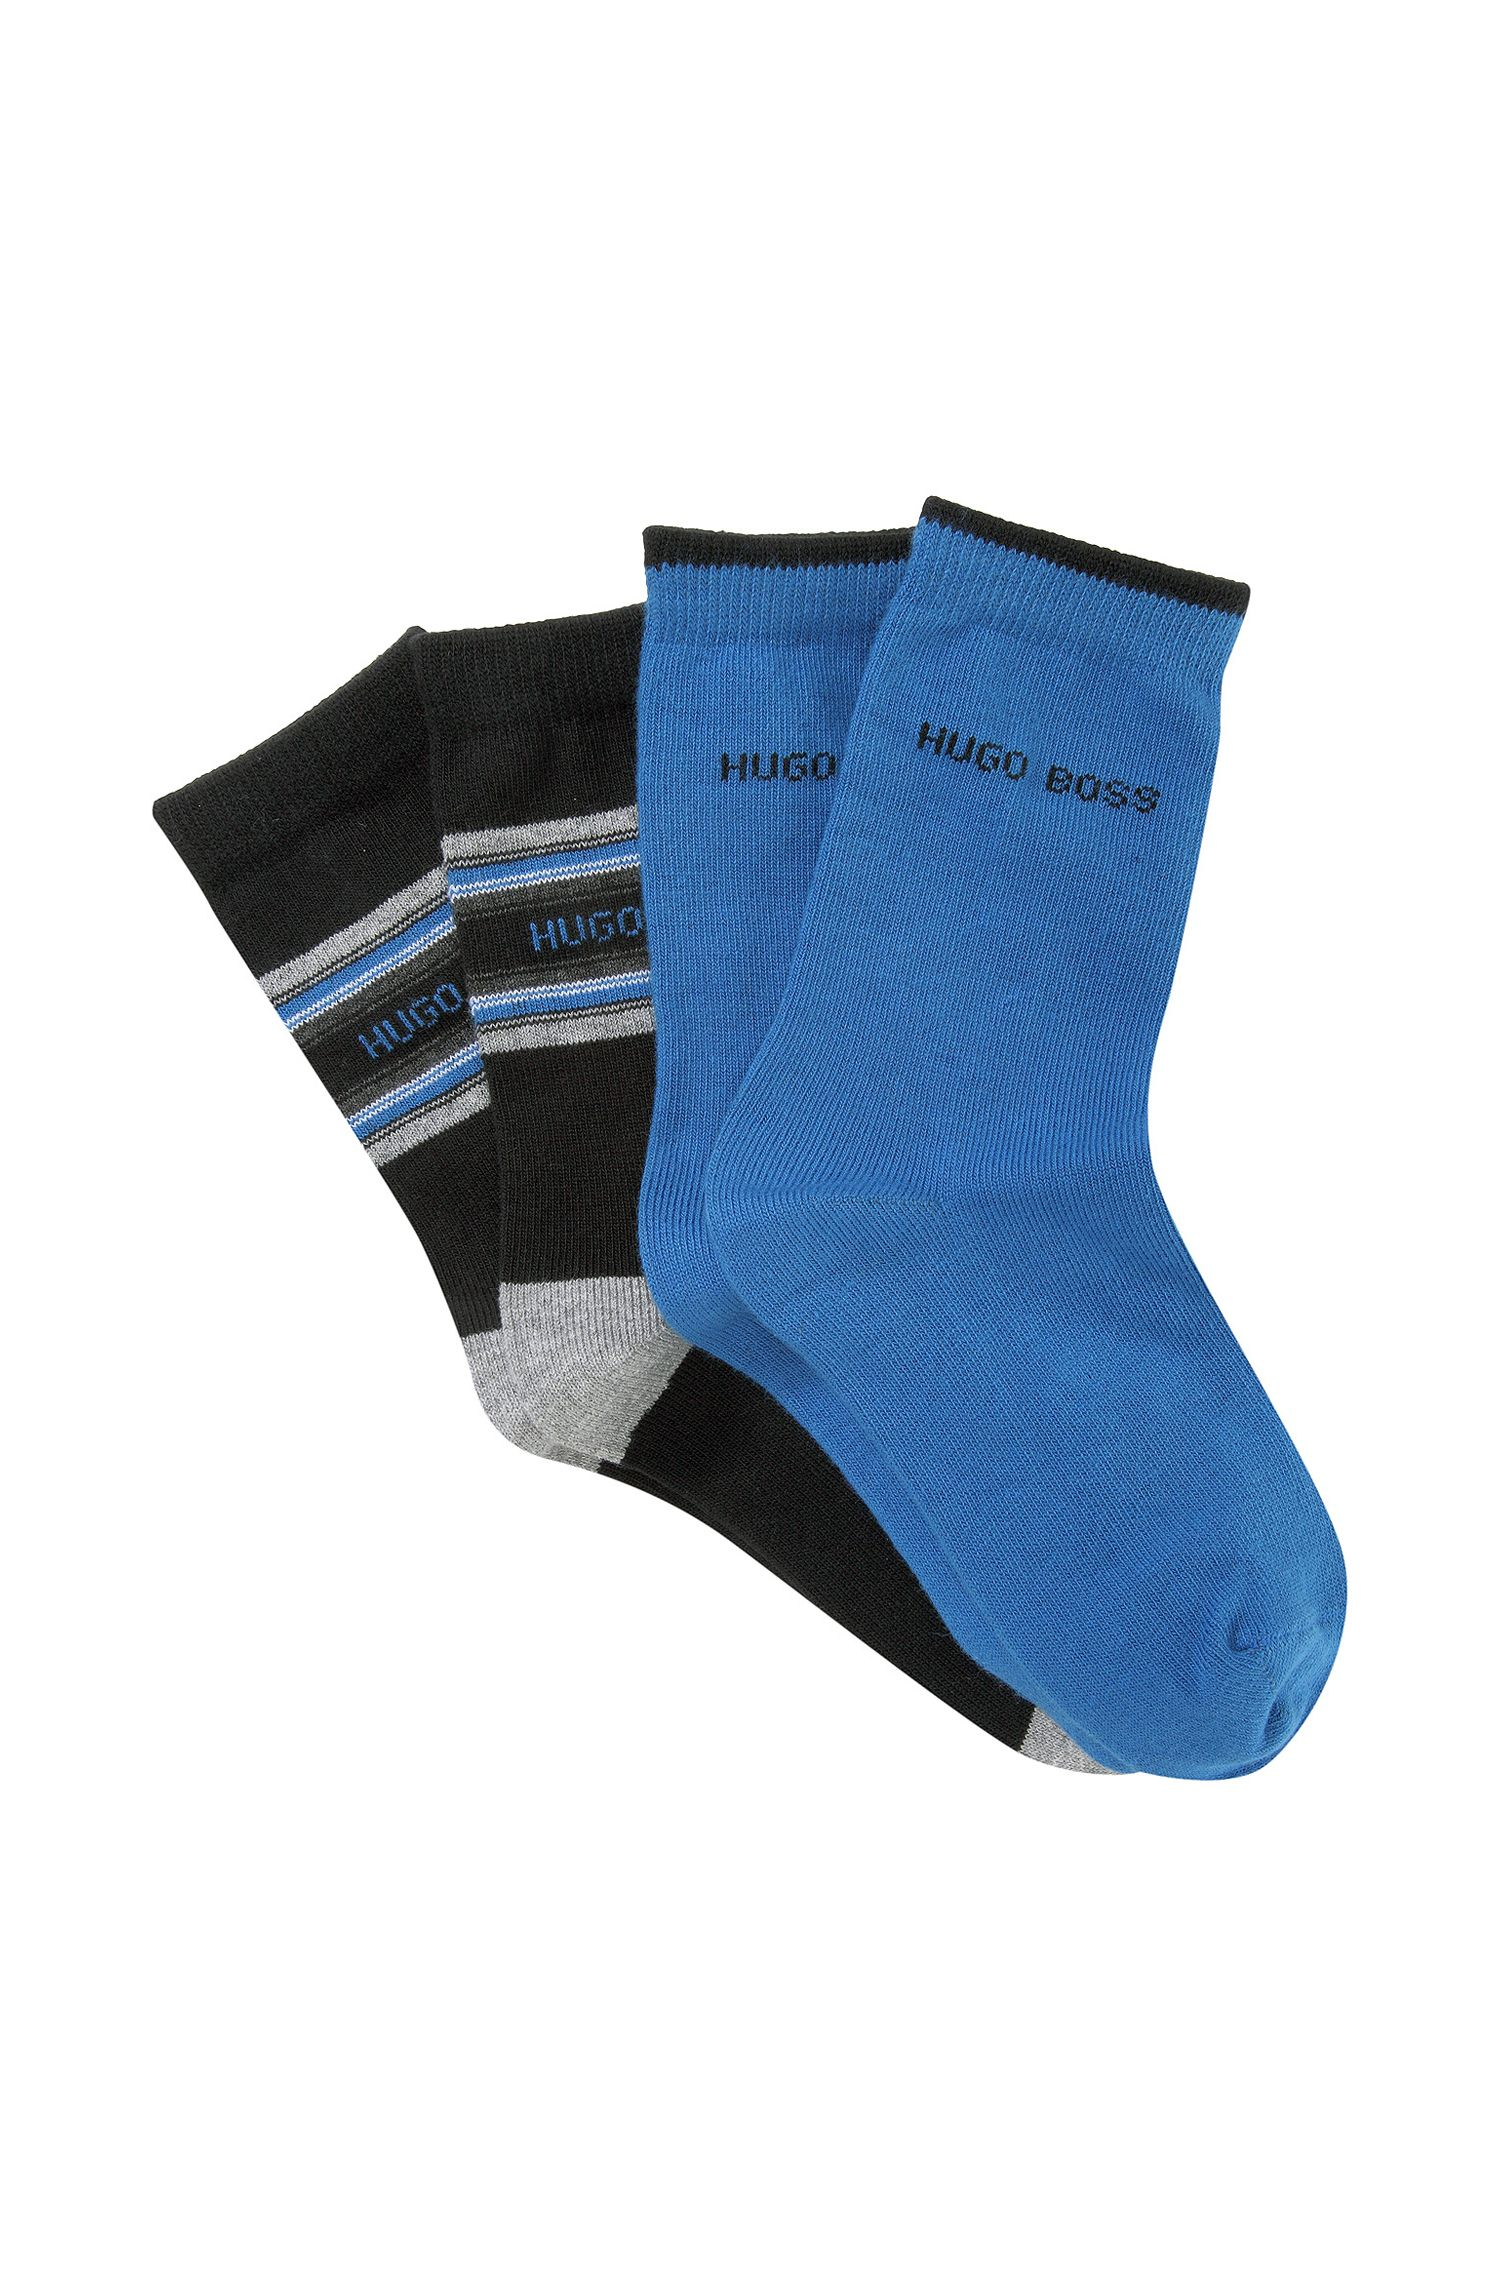 'J20135' | Two Pack Solid and Striped Socks